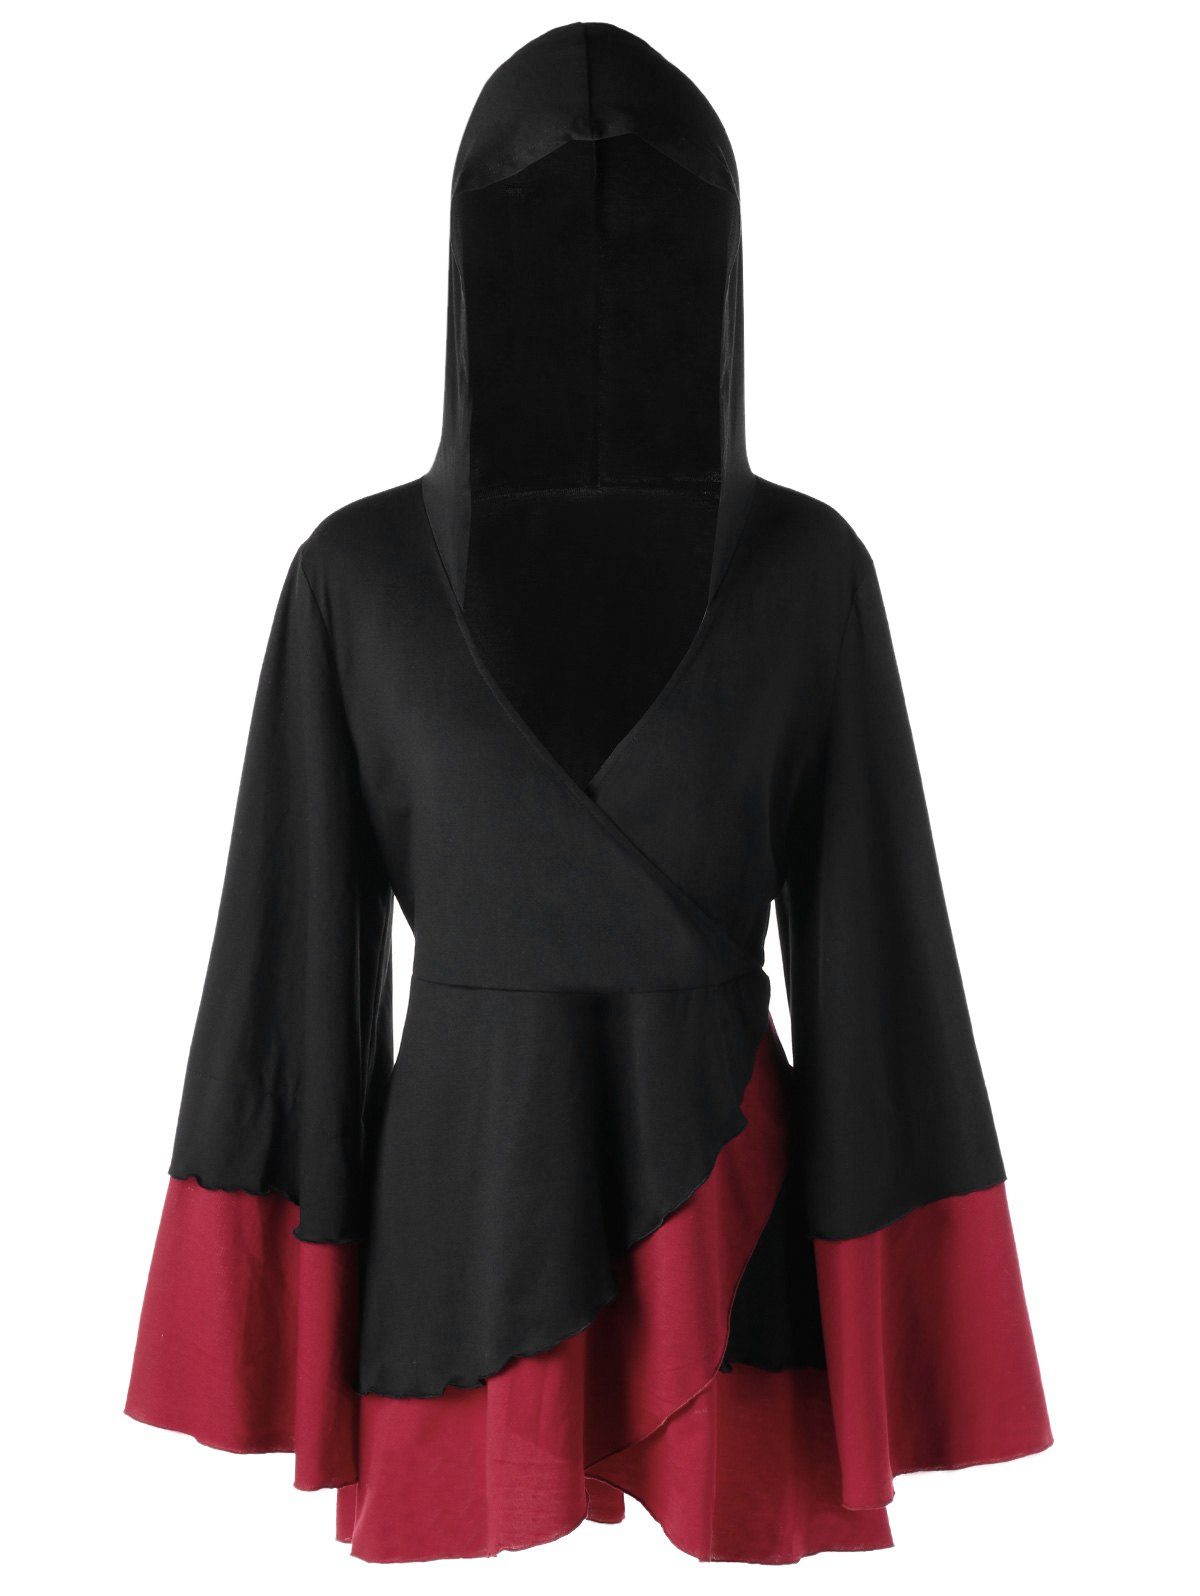 Plus Size Overlap Two Tone Hooded TopWOMEN<br><br>Size: 5XL; Color: RED WITH BLACK; Material: Polyester,Spandex; Shirt Length: Long; Sleeve Length: Full; Collar: Hooded; Style: Casual; Season: Fall,Spring; Pattern Type: Solid; Weight: 0.6000kg; Package Contents: 1 x Top;